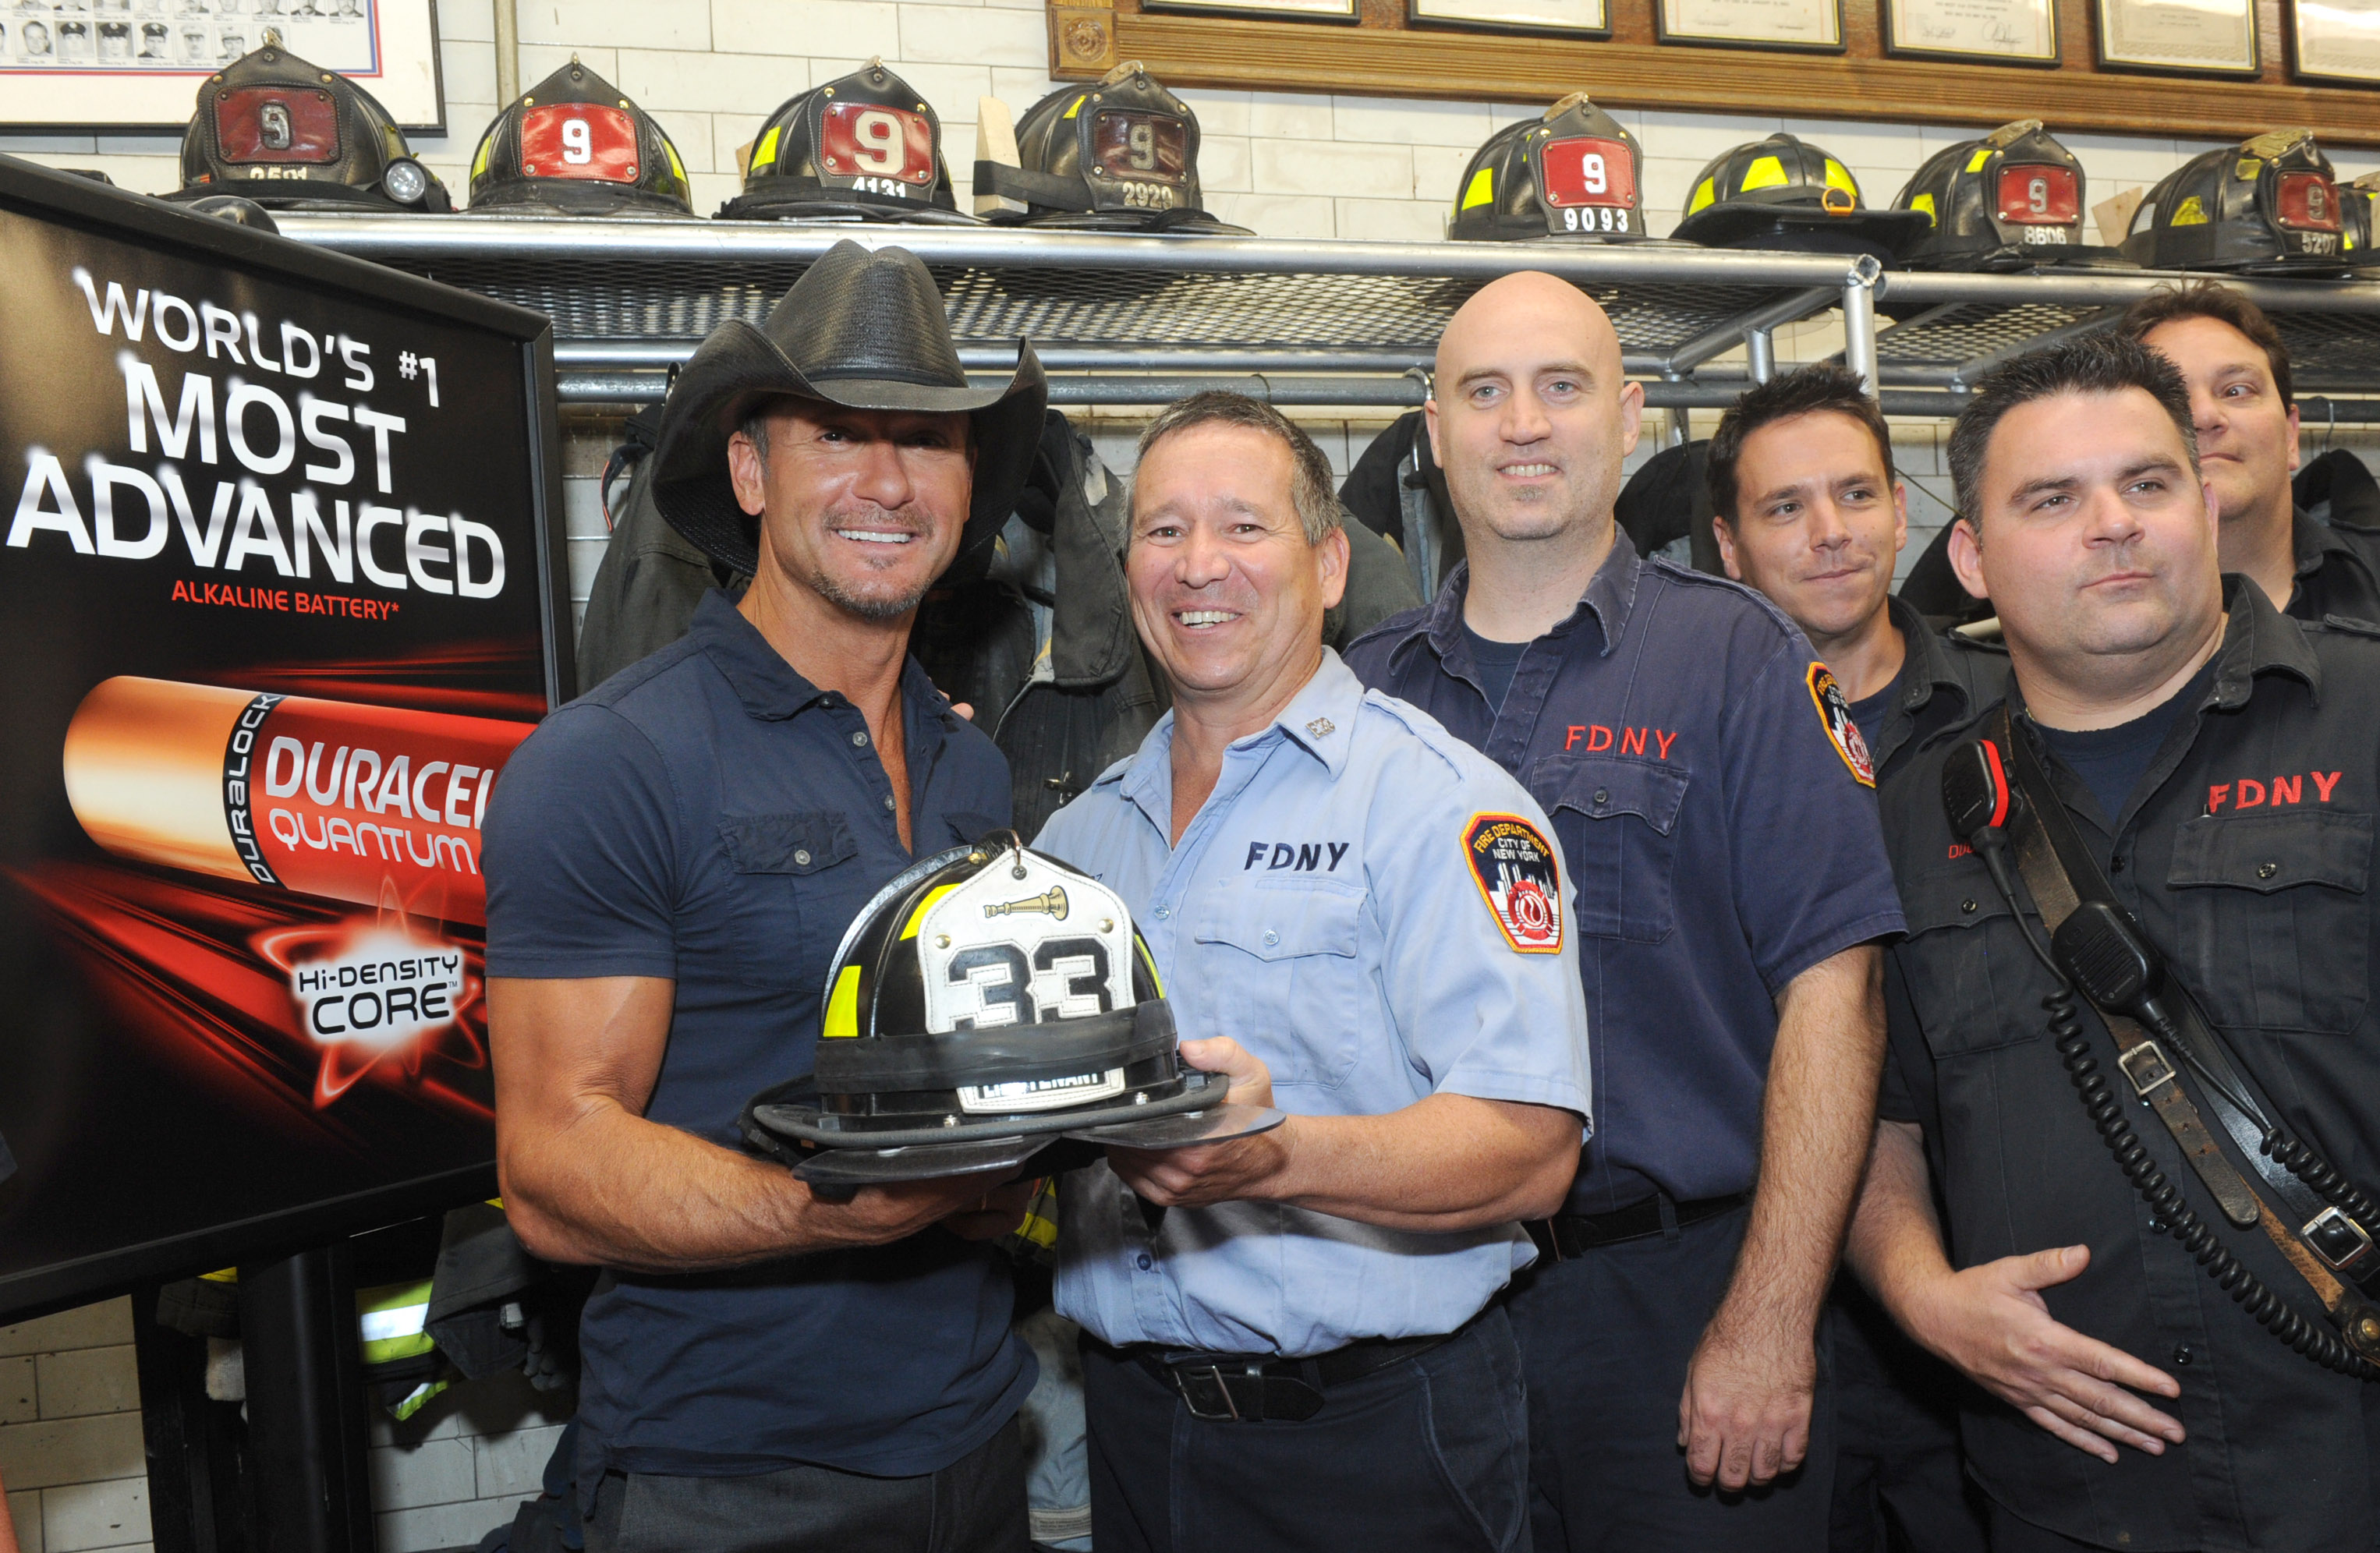 Country music star Tim McGraw with members of the FDNY at the launch event of Duracell's new Quantum battery and announces the donation of one million of these most powerful batteries to first responders, Thursday, Aug. 15, 2013, at an FDNY firehouse in New York. (Diane Bondareff/Invision for Duracell)